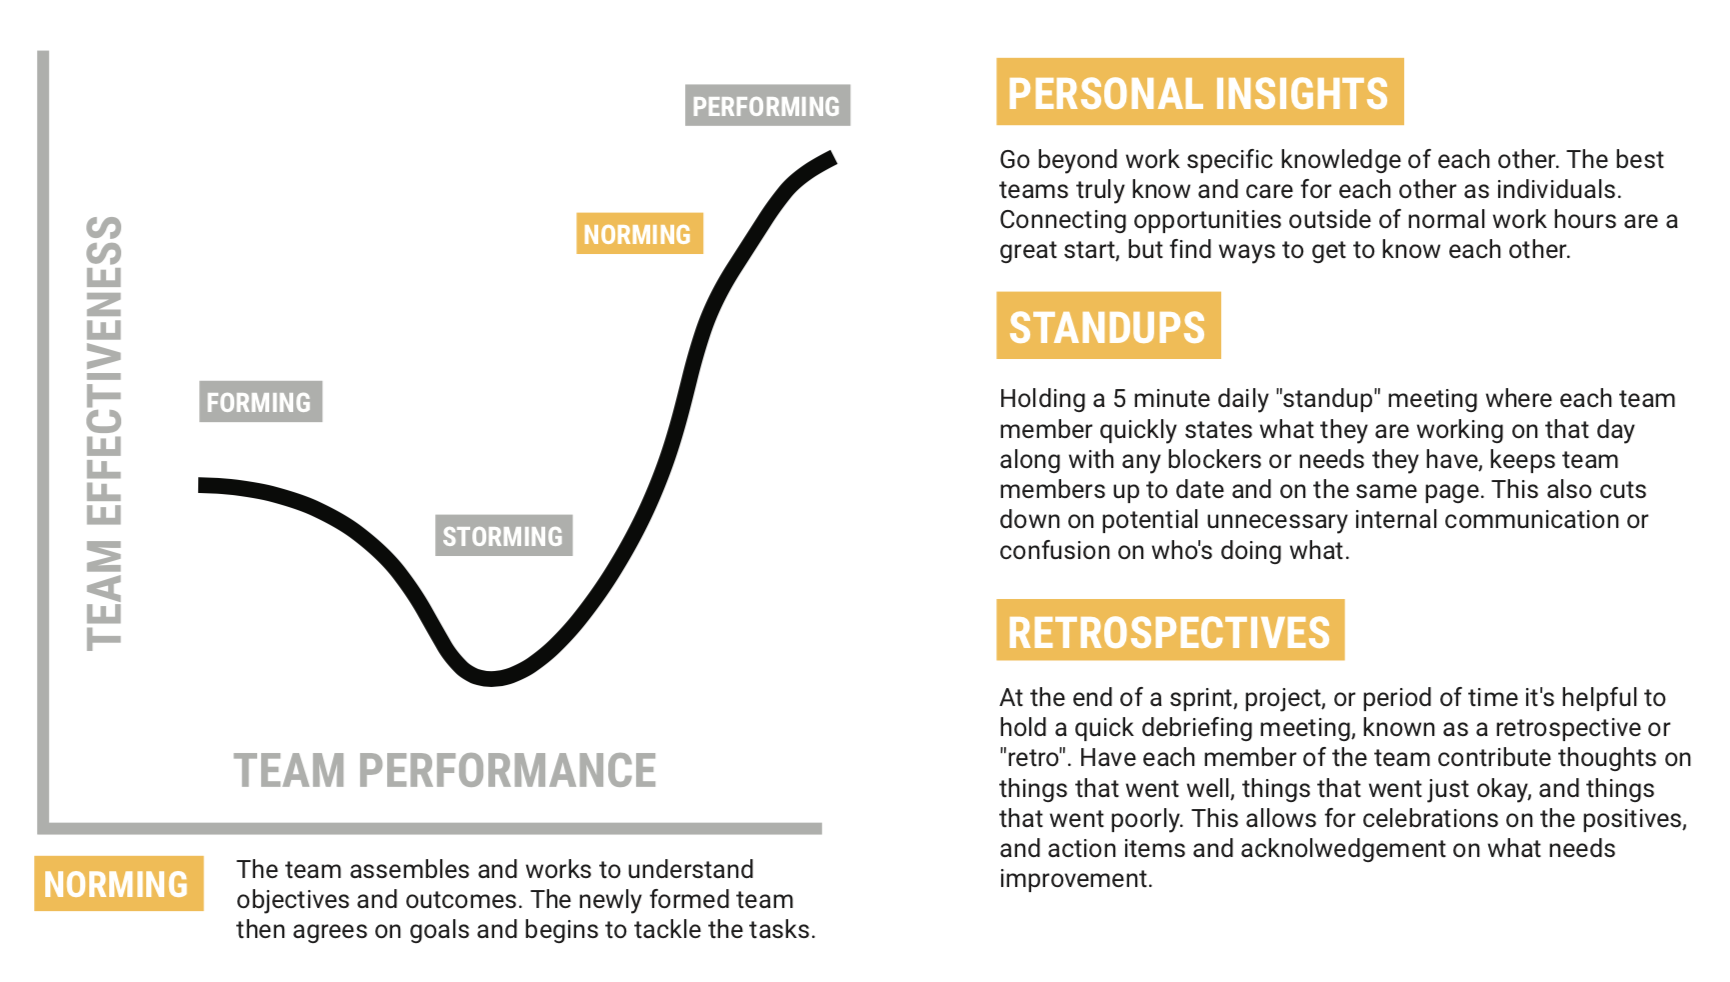 """Image with a graph showing that """"norming"""" is the third stage of team development"""